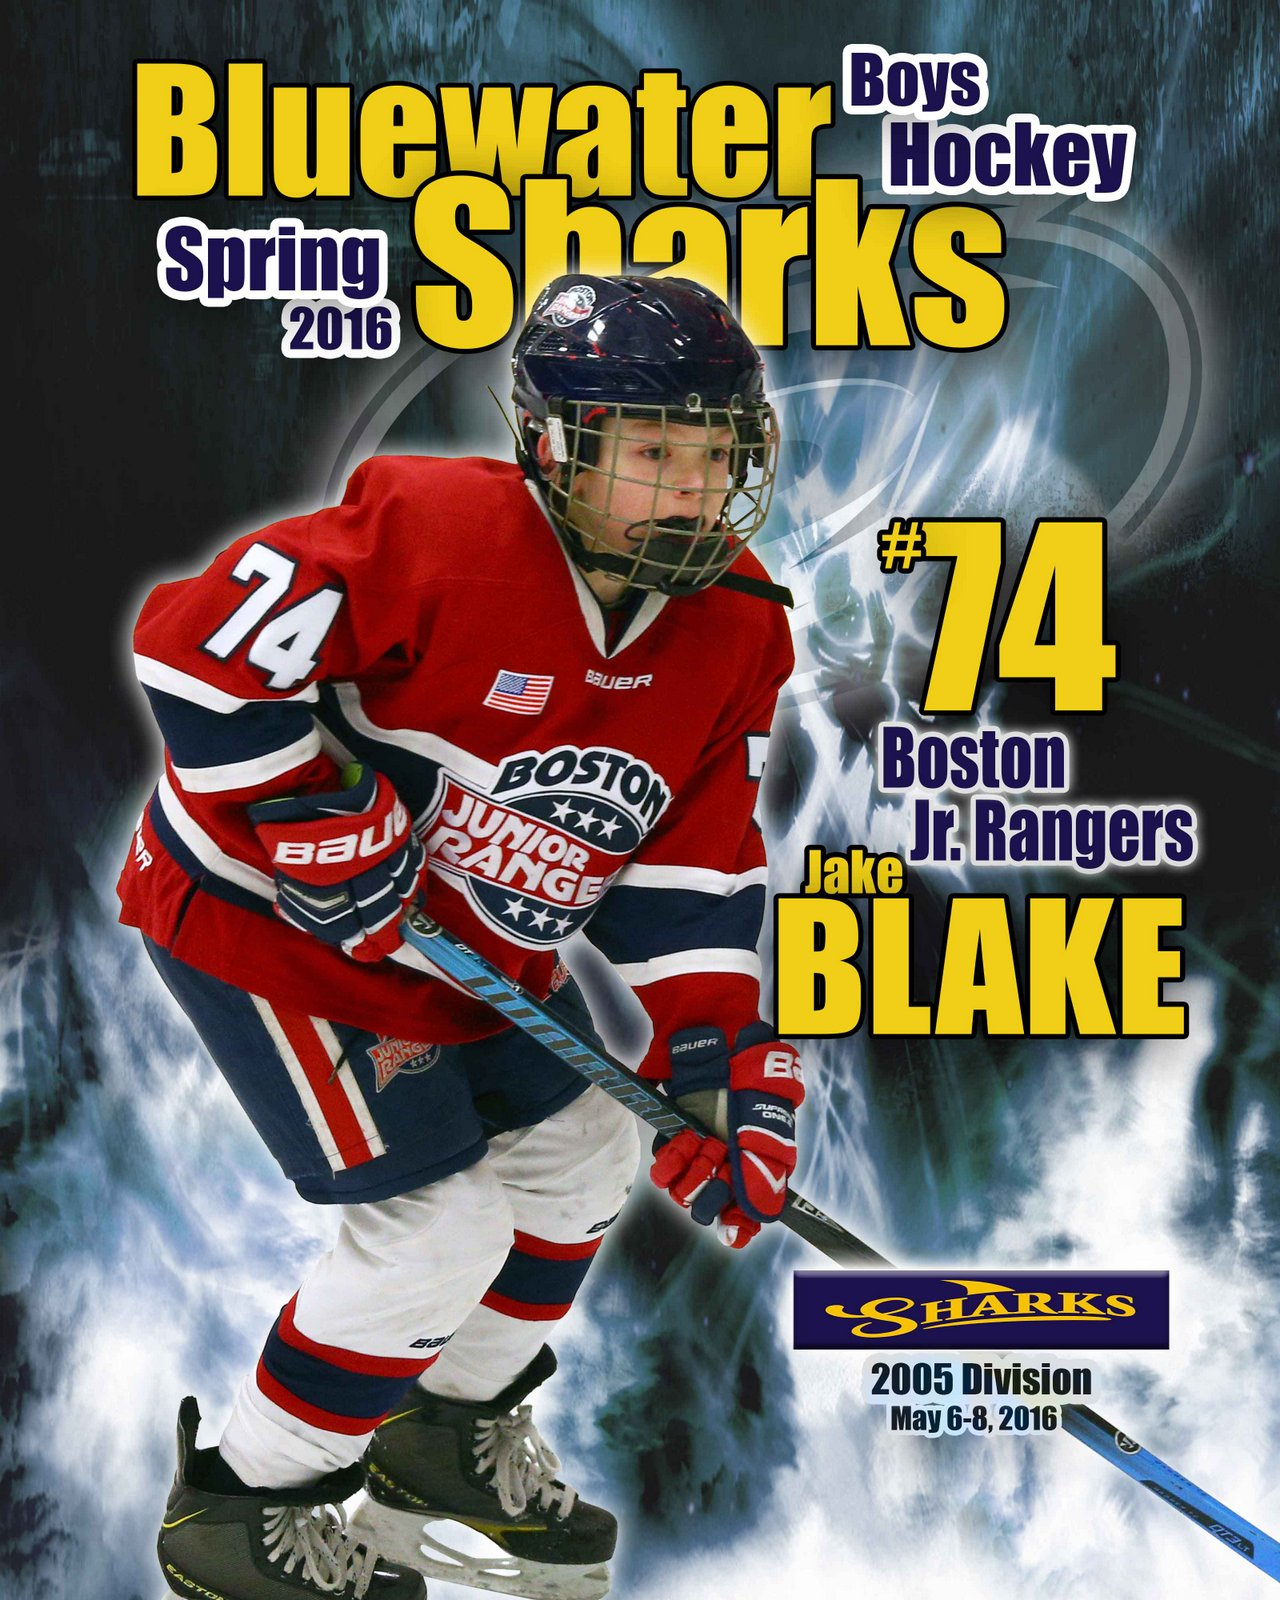 SilverPeak Studios Commemorative Poster Samples Action Sports Hockey Photography (13)